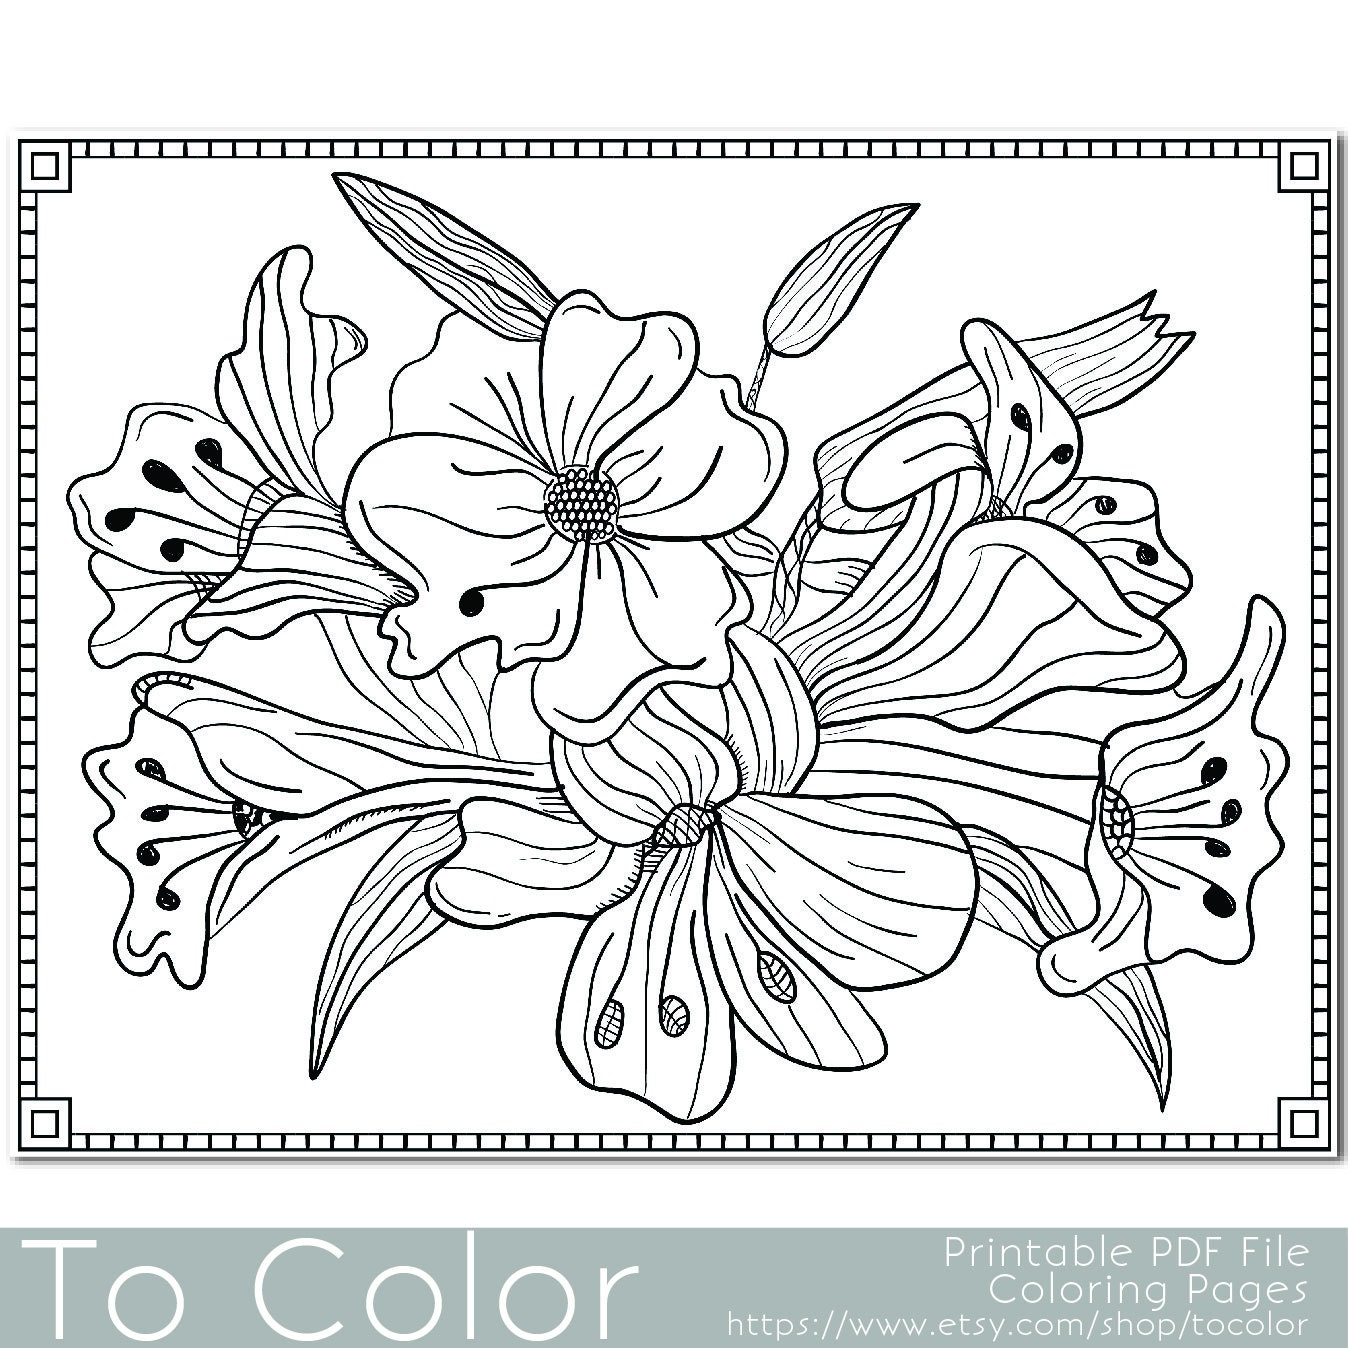 Flower Coloring Pages Pdf : Flower lilies floral coloring page for adults pdf jpg